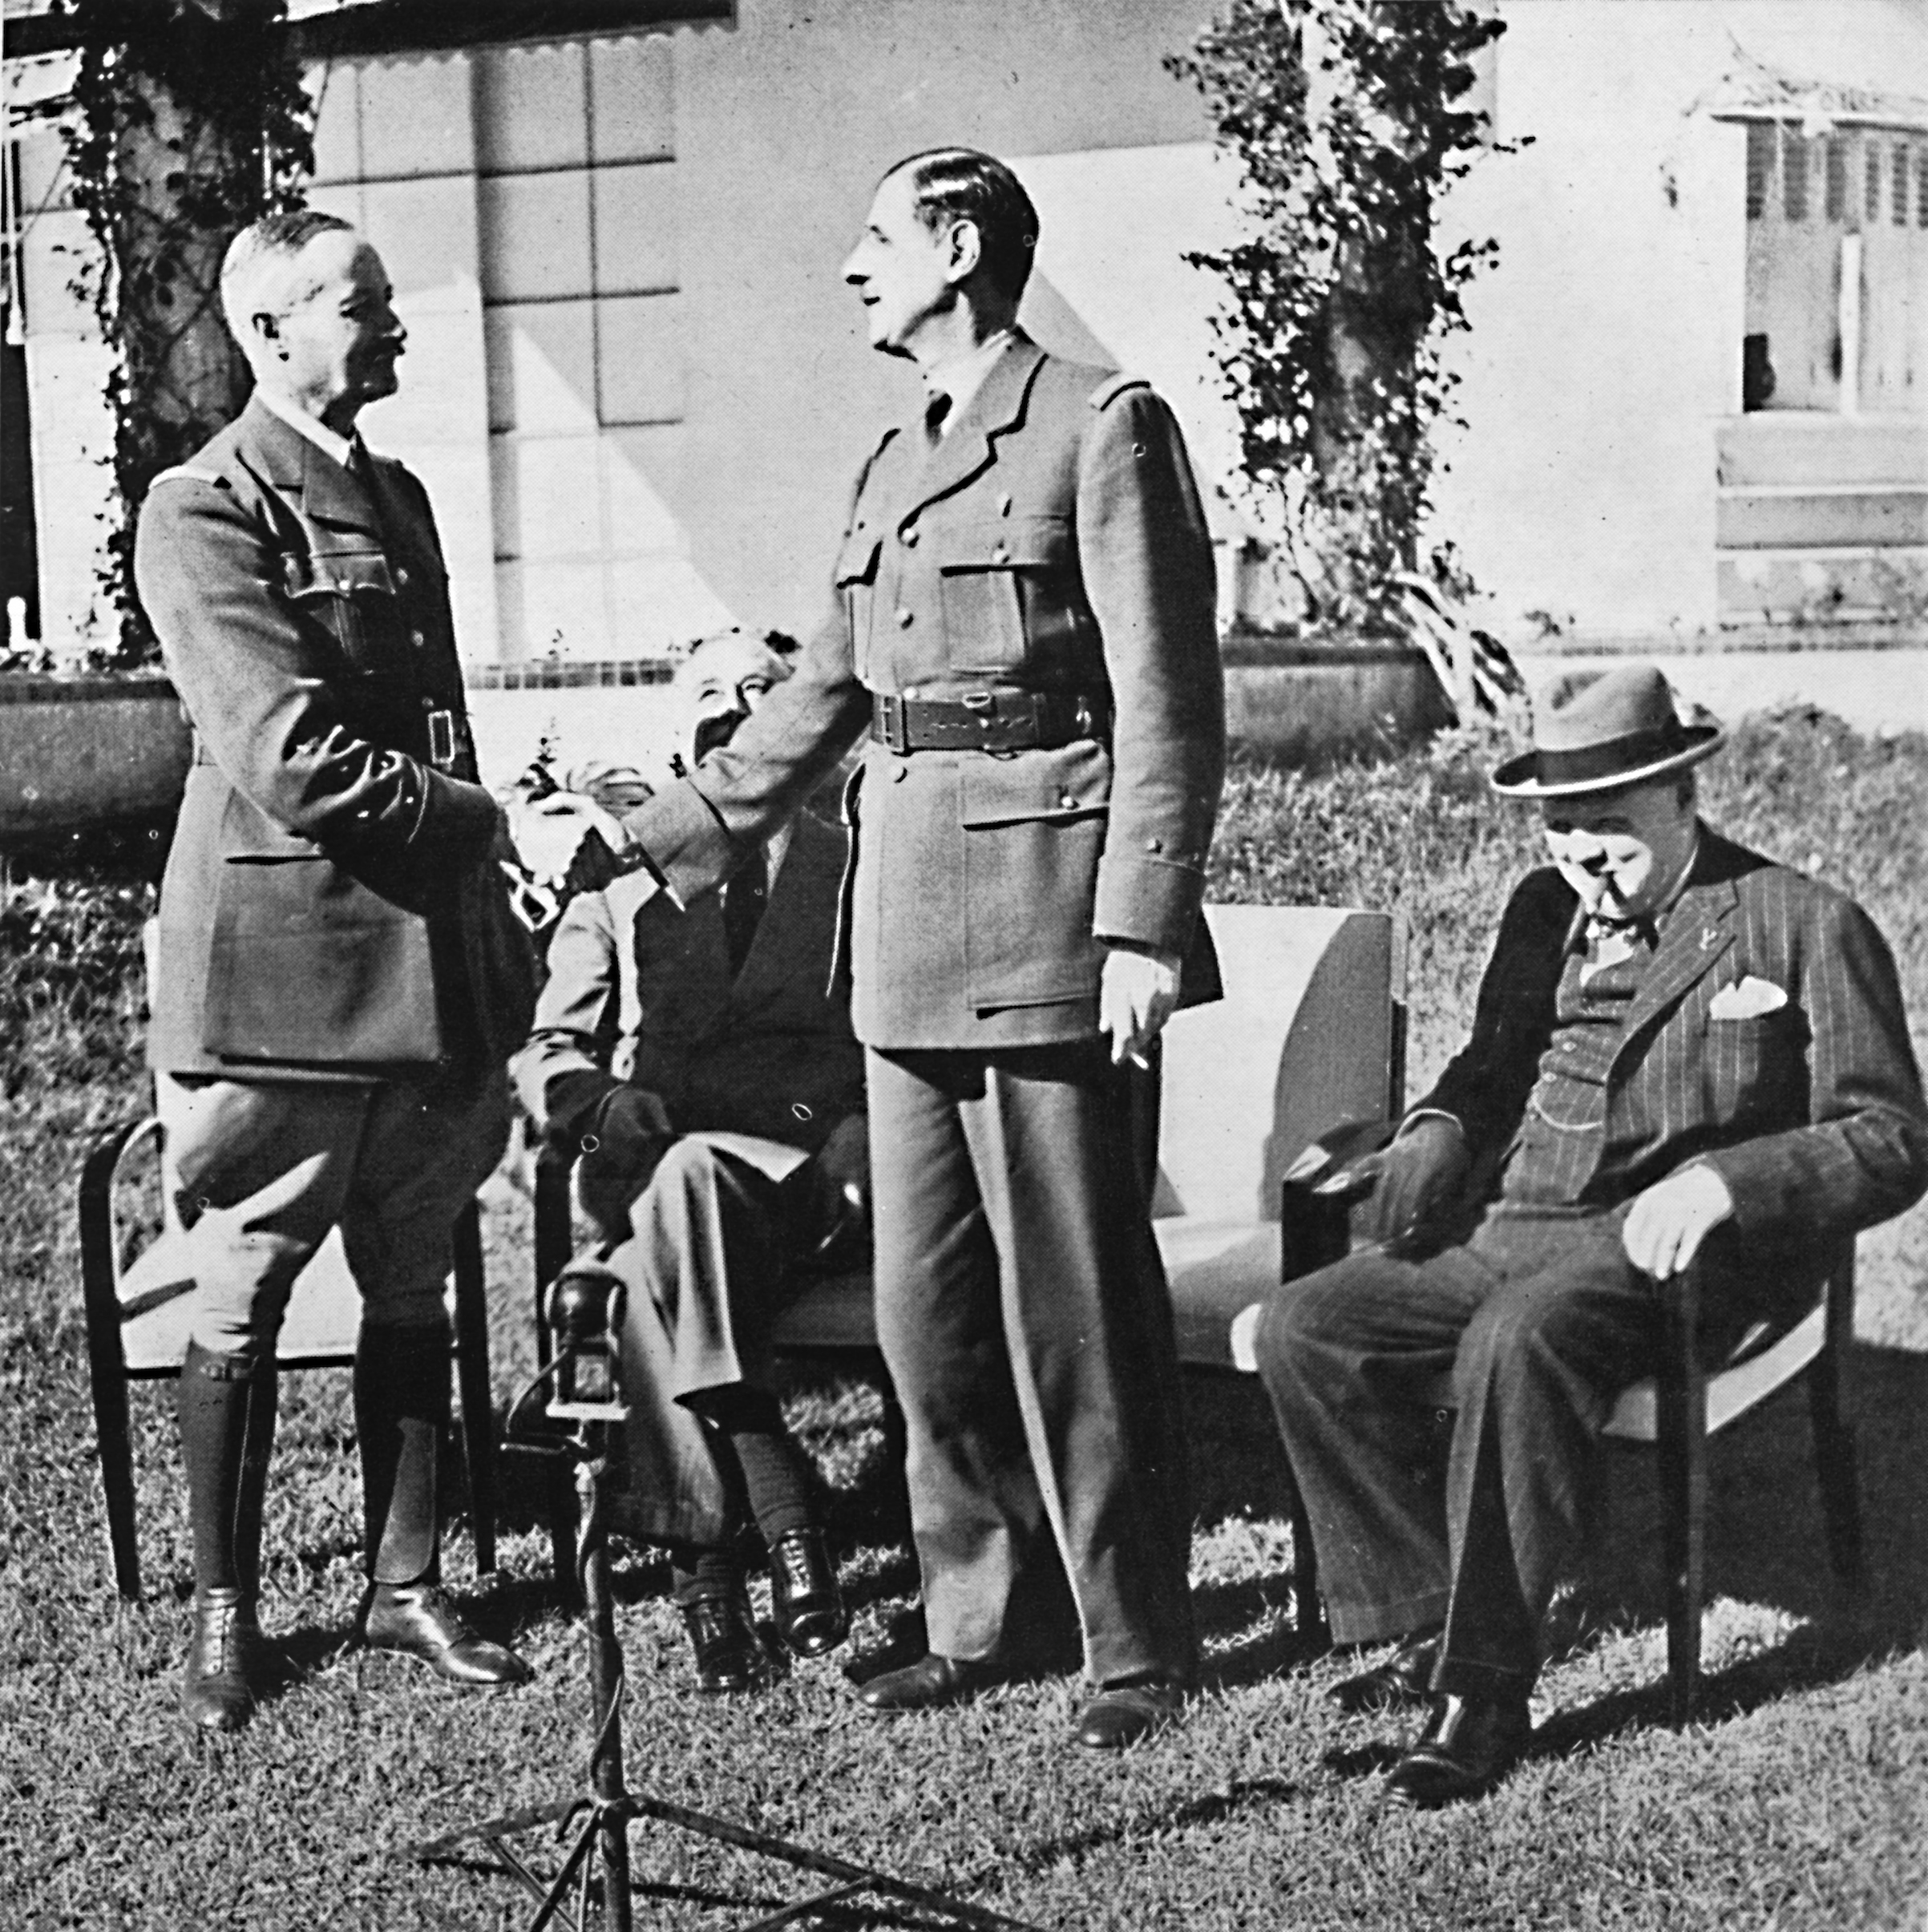 General Henri Honore Giraud and General Charles De Gaulle shake hands in front of American President Franklin Delano Roosevelt and British Prime Minister Winston Churchill at the Casablanca Conference. From Winston Churchill: His Life in Pictures, by Ben Tucker. [Sagall Press, Ltd., London, 1945]